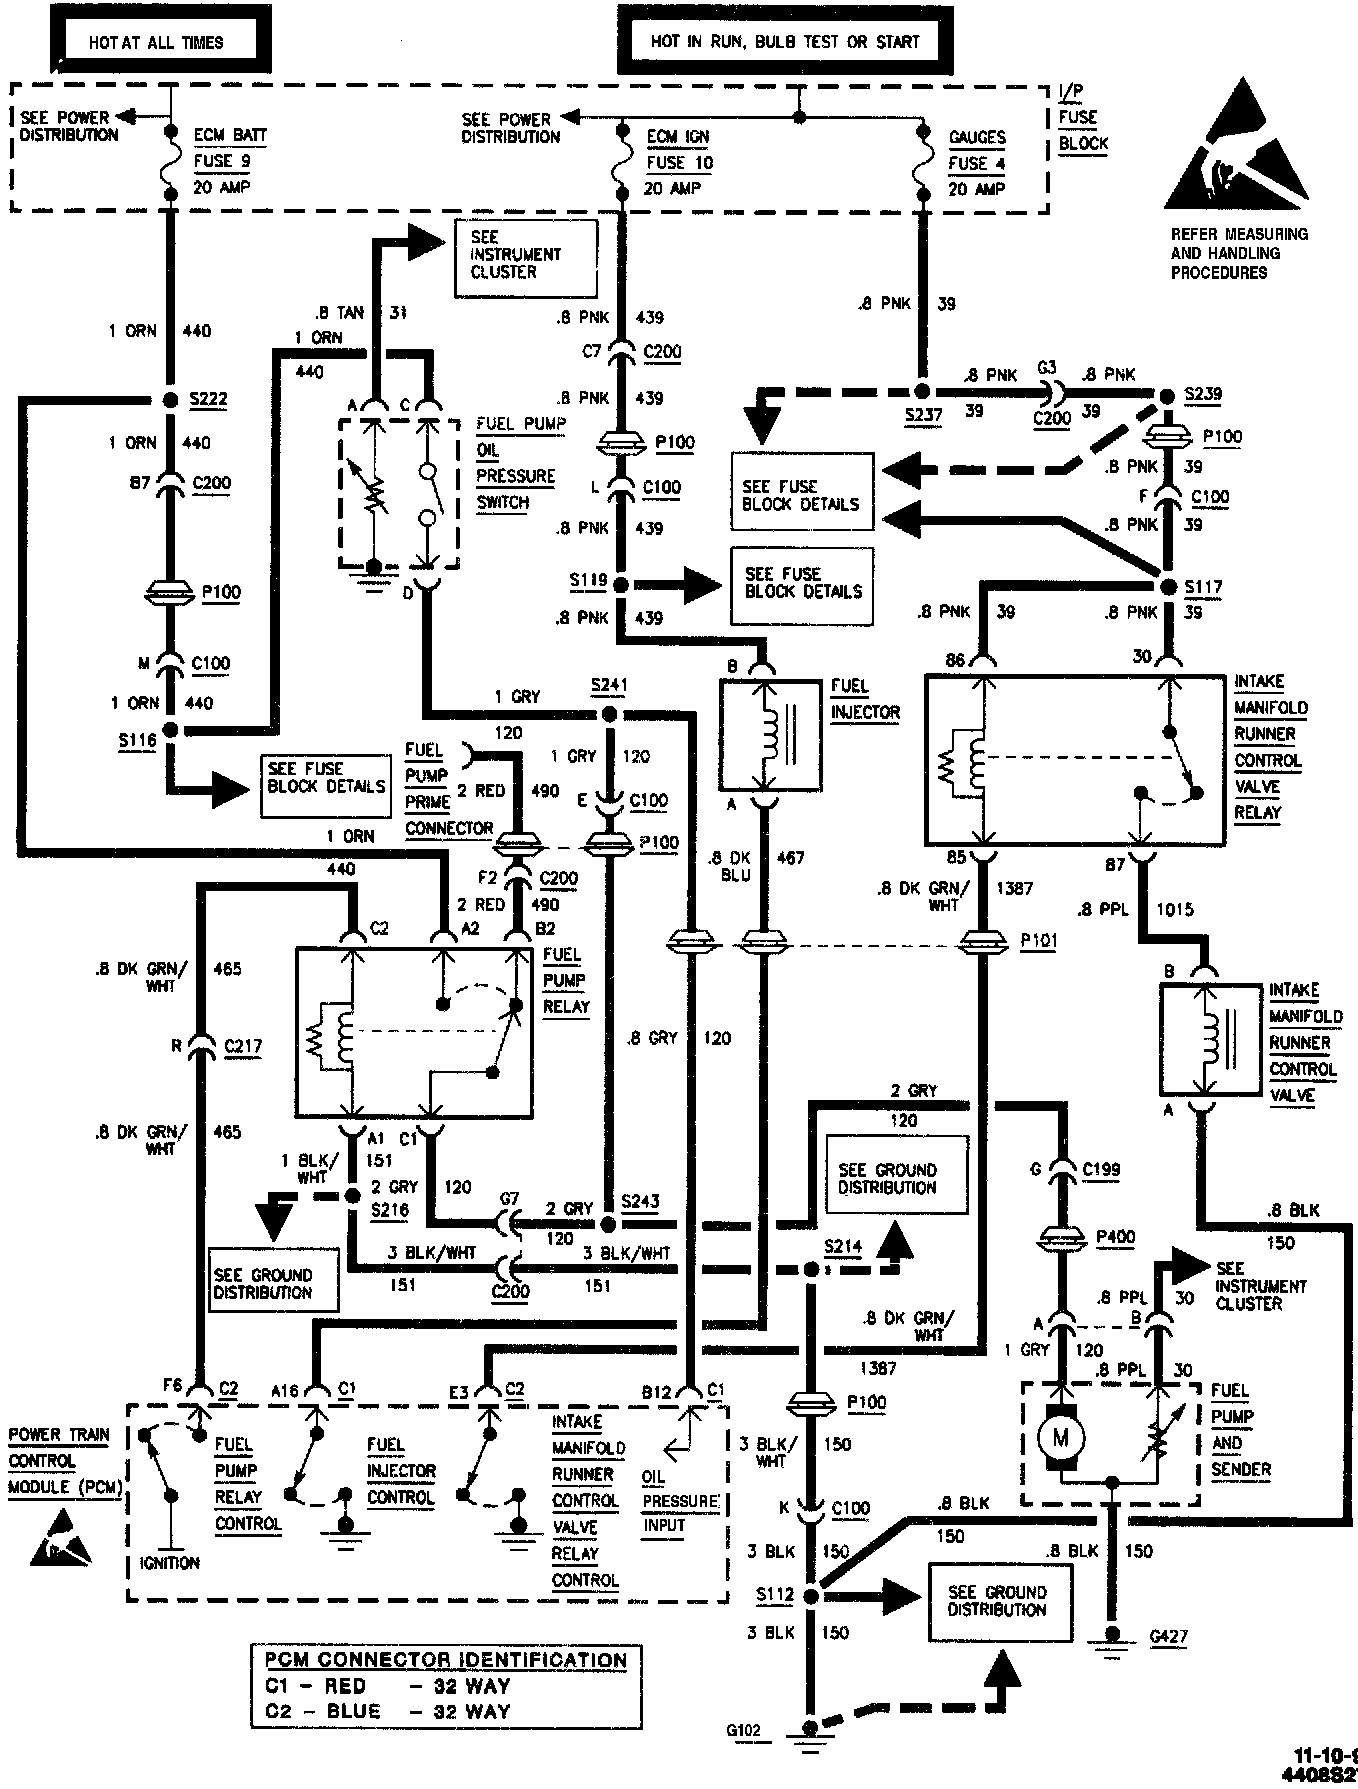 1998 Chevy S10 Engine Diagram Get Free Image About Wiring Diagram. This  image (4 3 ...